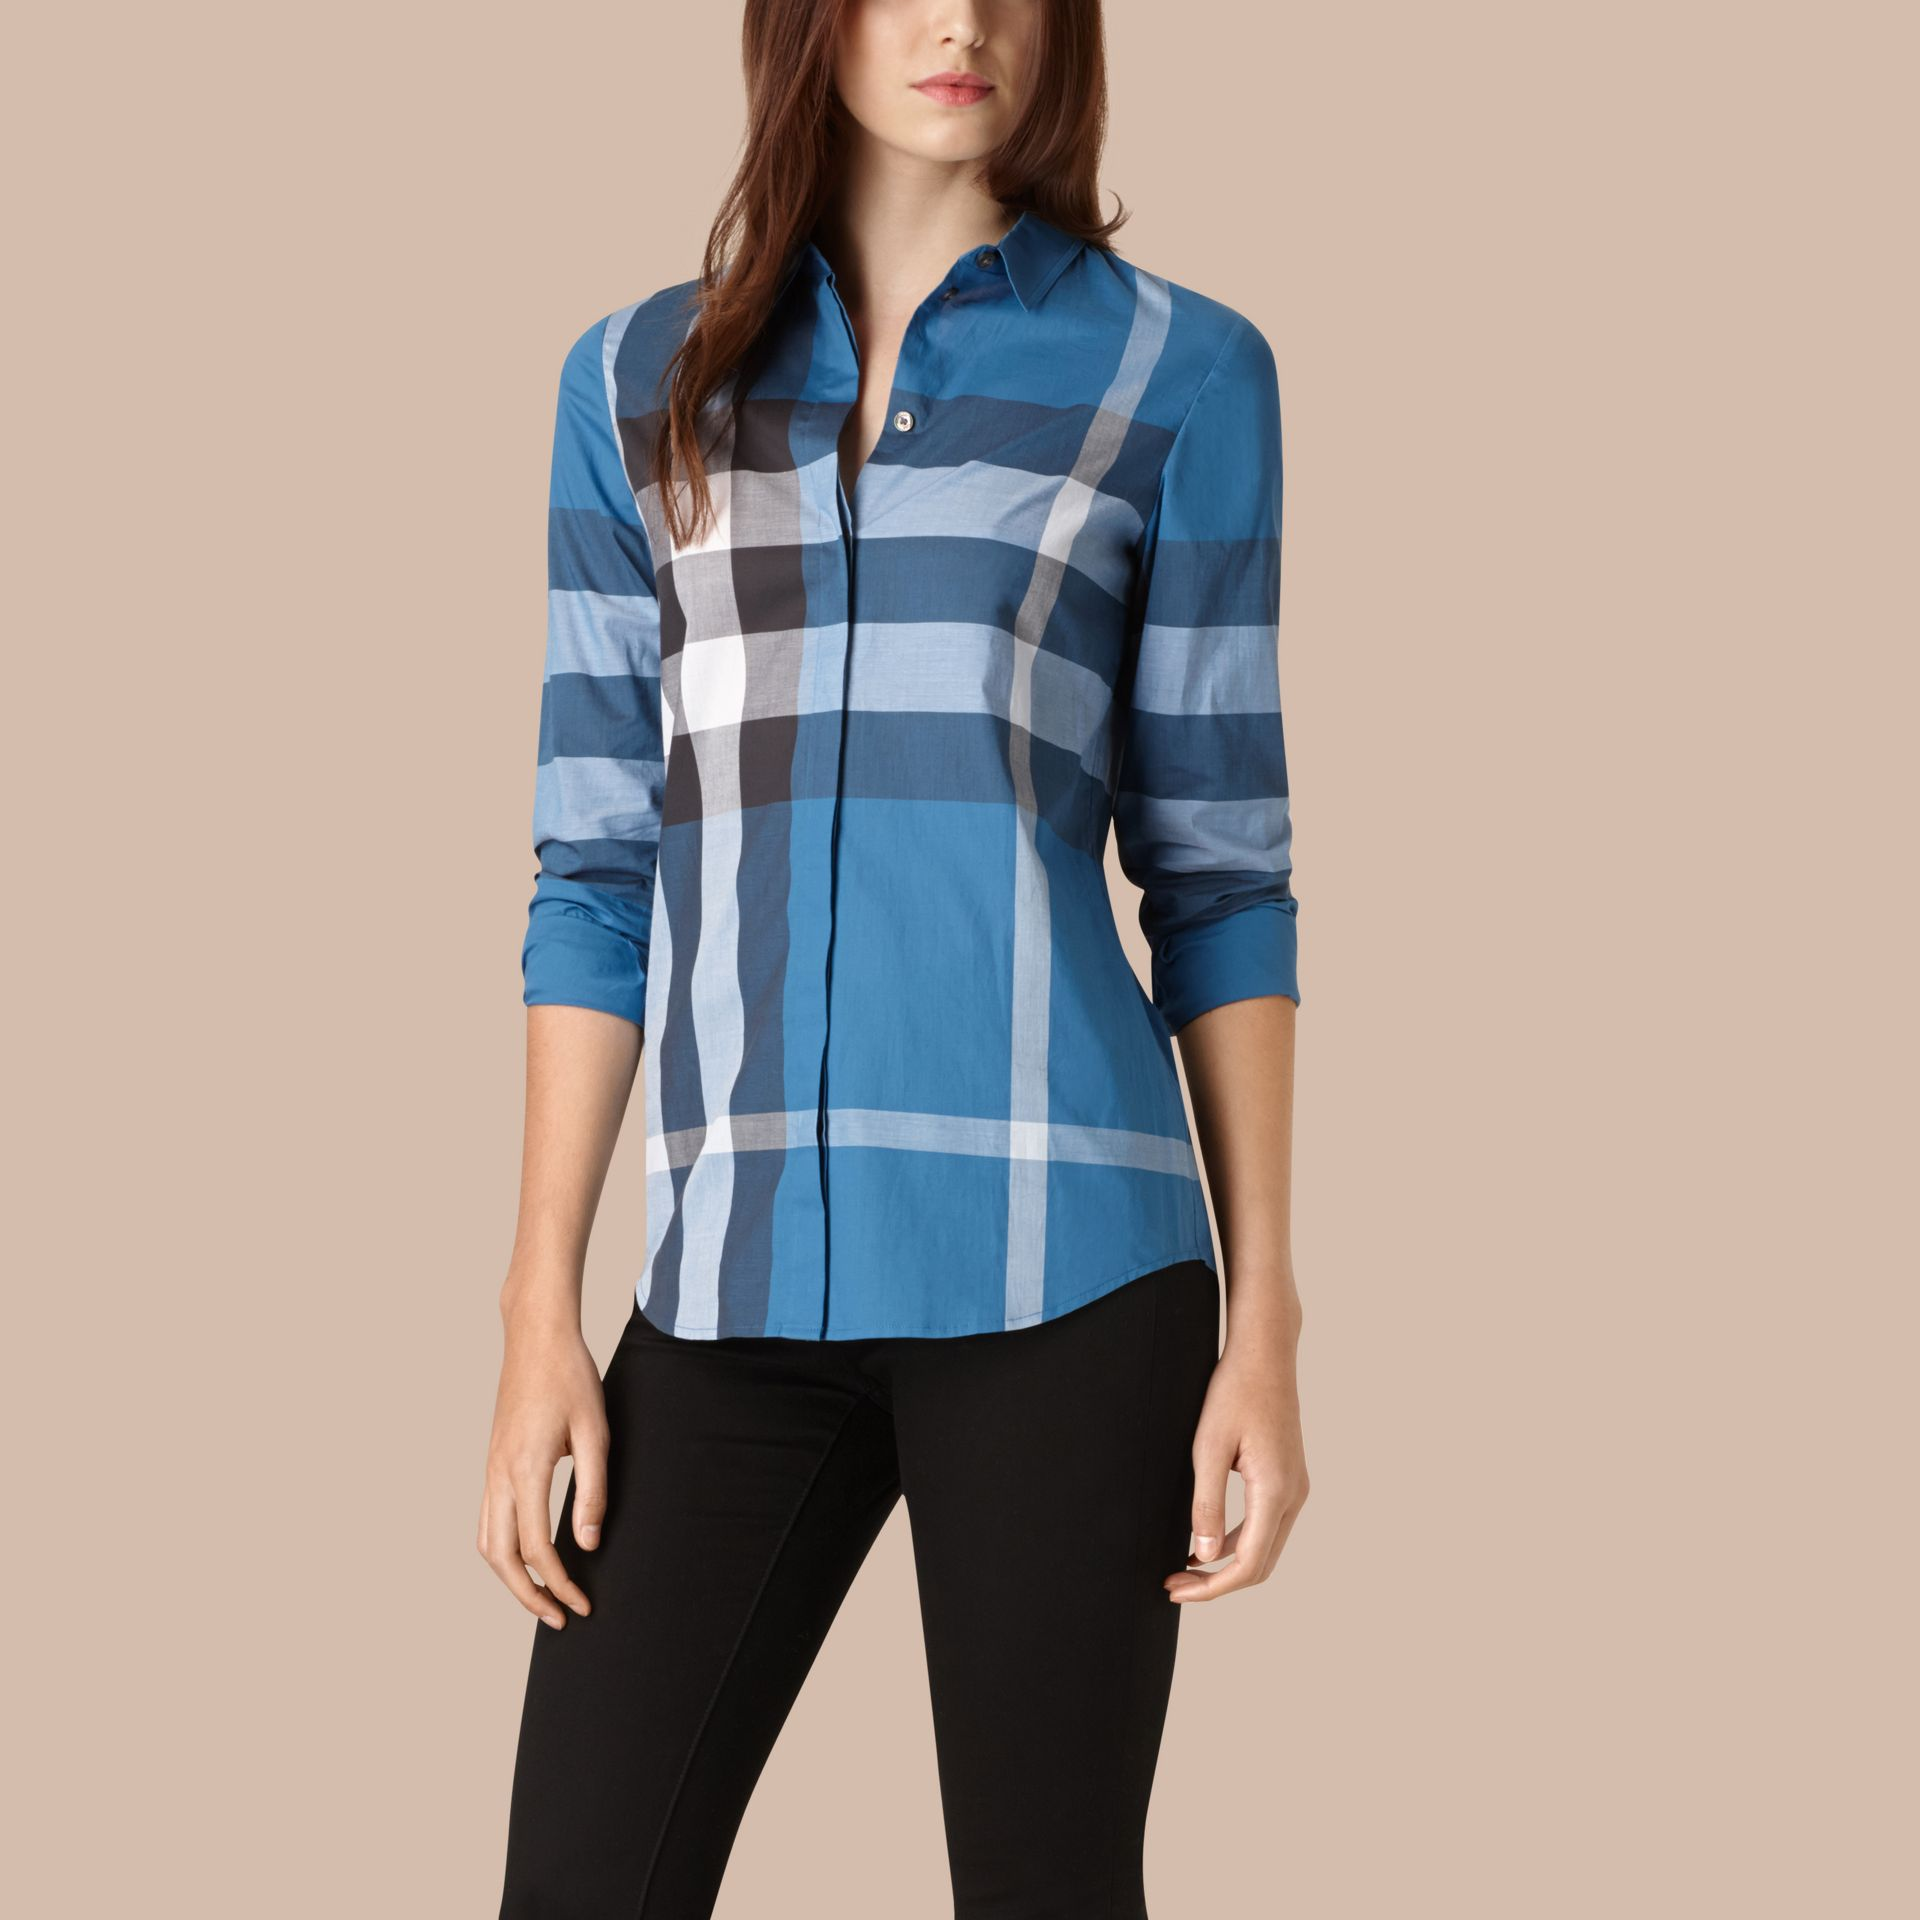 Lupin blue Check Cotton Shirt Lupin Blue - gallery image 1